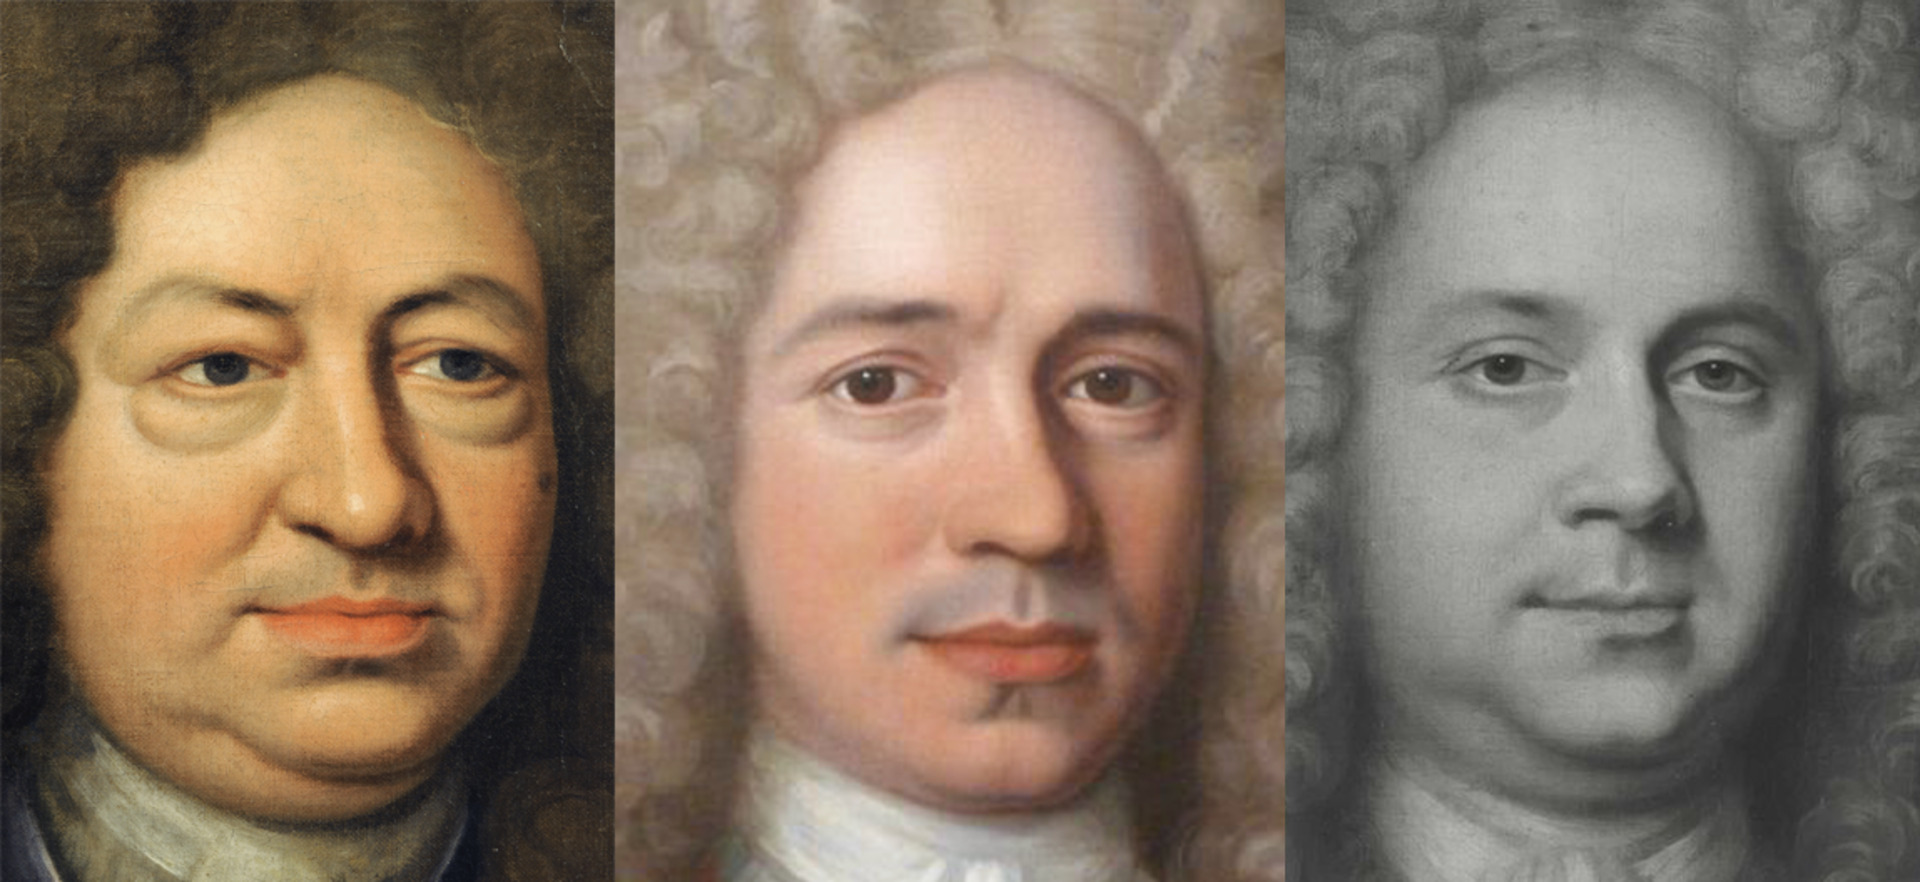 Composite image of details from B1970.1 and details of two signed and dated works by John Verelst. From left to right: Elihu Yale, photo by Jessica David; John Verelst, Unknown Man (detail), signed and dated 1717, photo by Roy Precious; John Verelst, Unknown Man, signed and dated 1719, photo courtesy of the Frick Collection Photo Archive